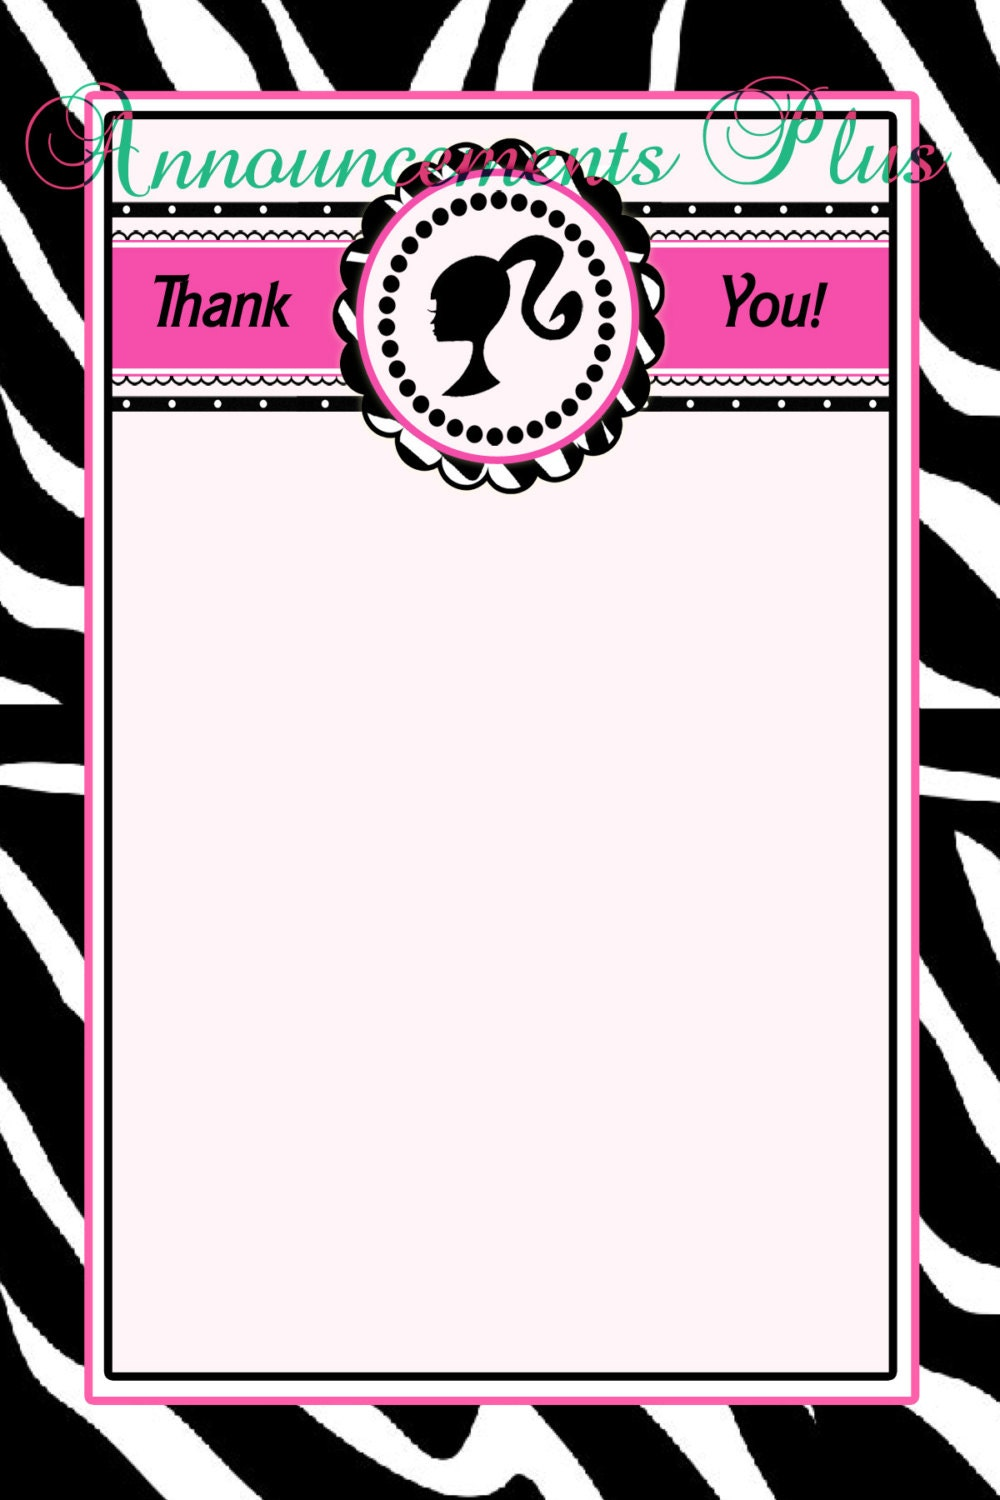 Invitation Card Barbie Design is great invitations layout